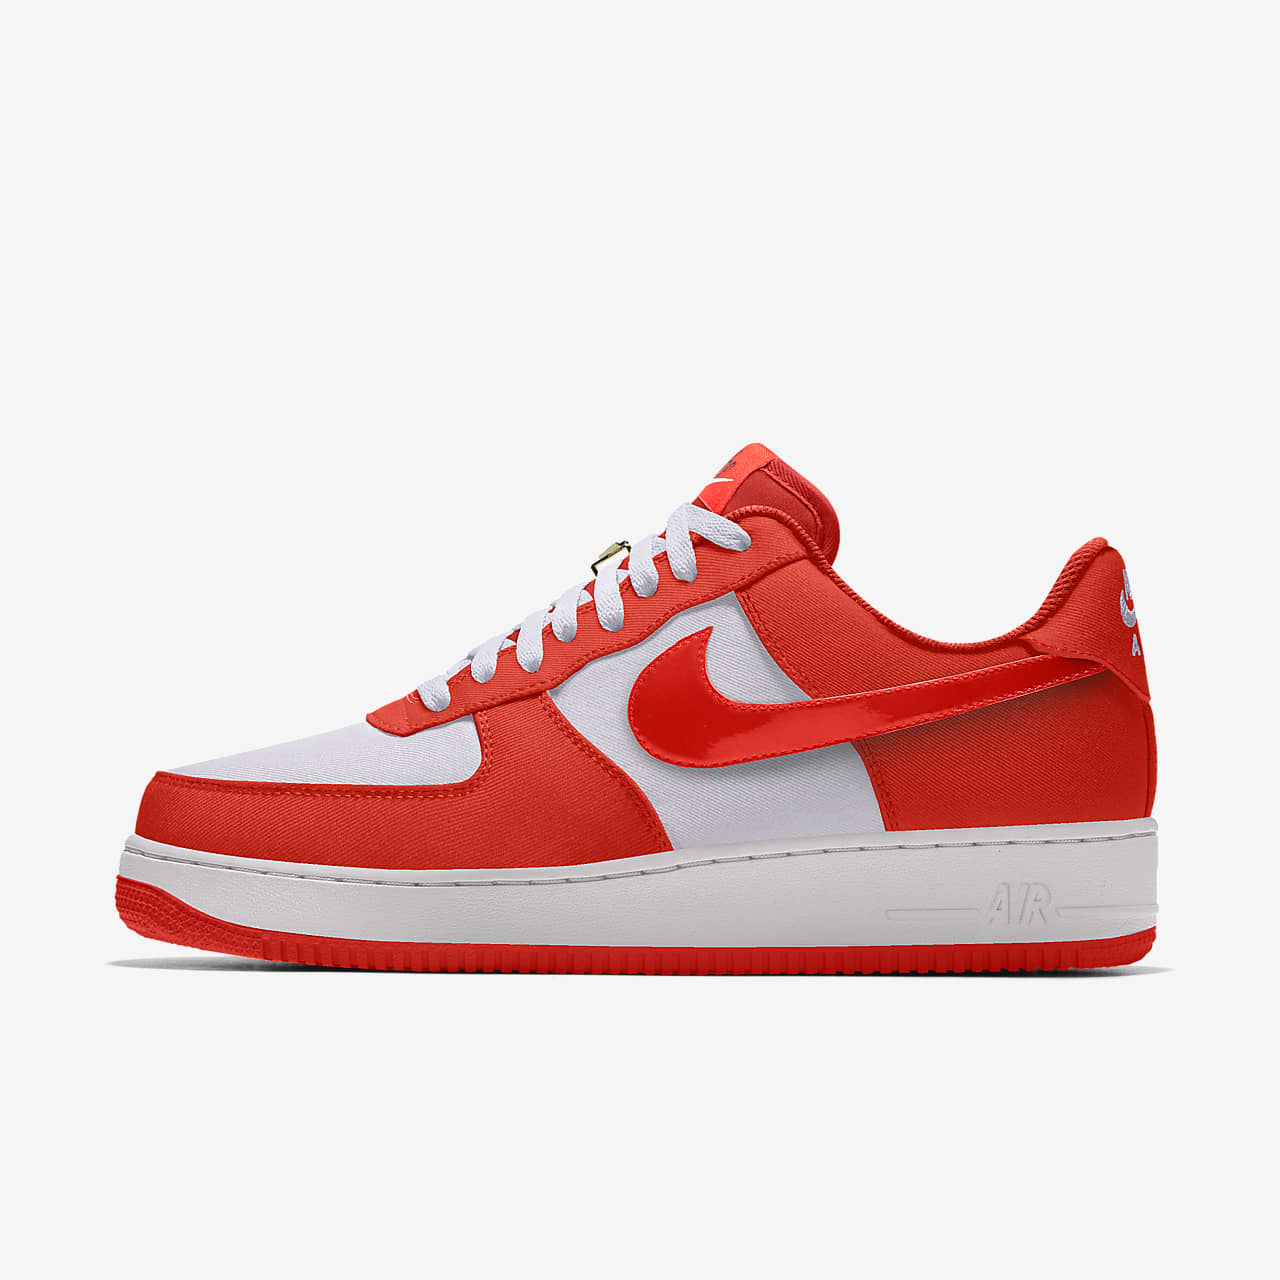 Scarpa personalizzabile Nike Air Force 1 Low Unlocked - Donna